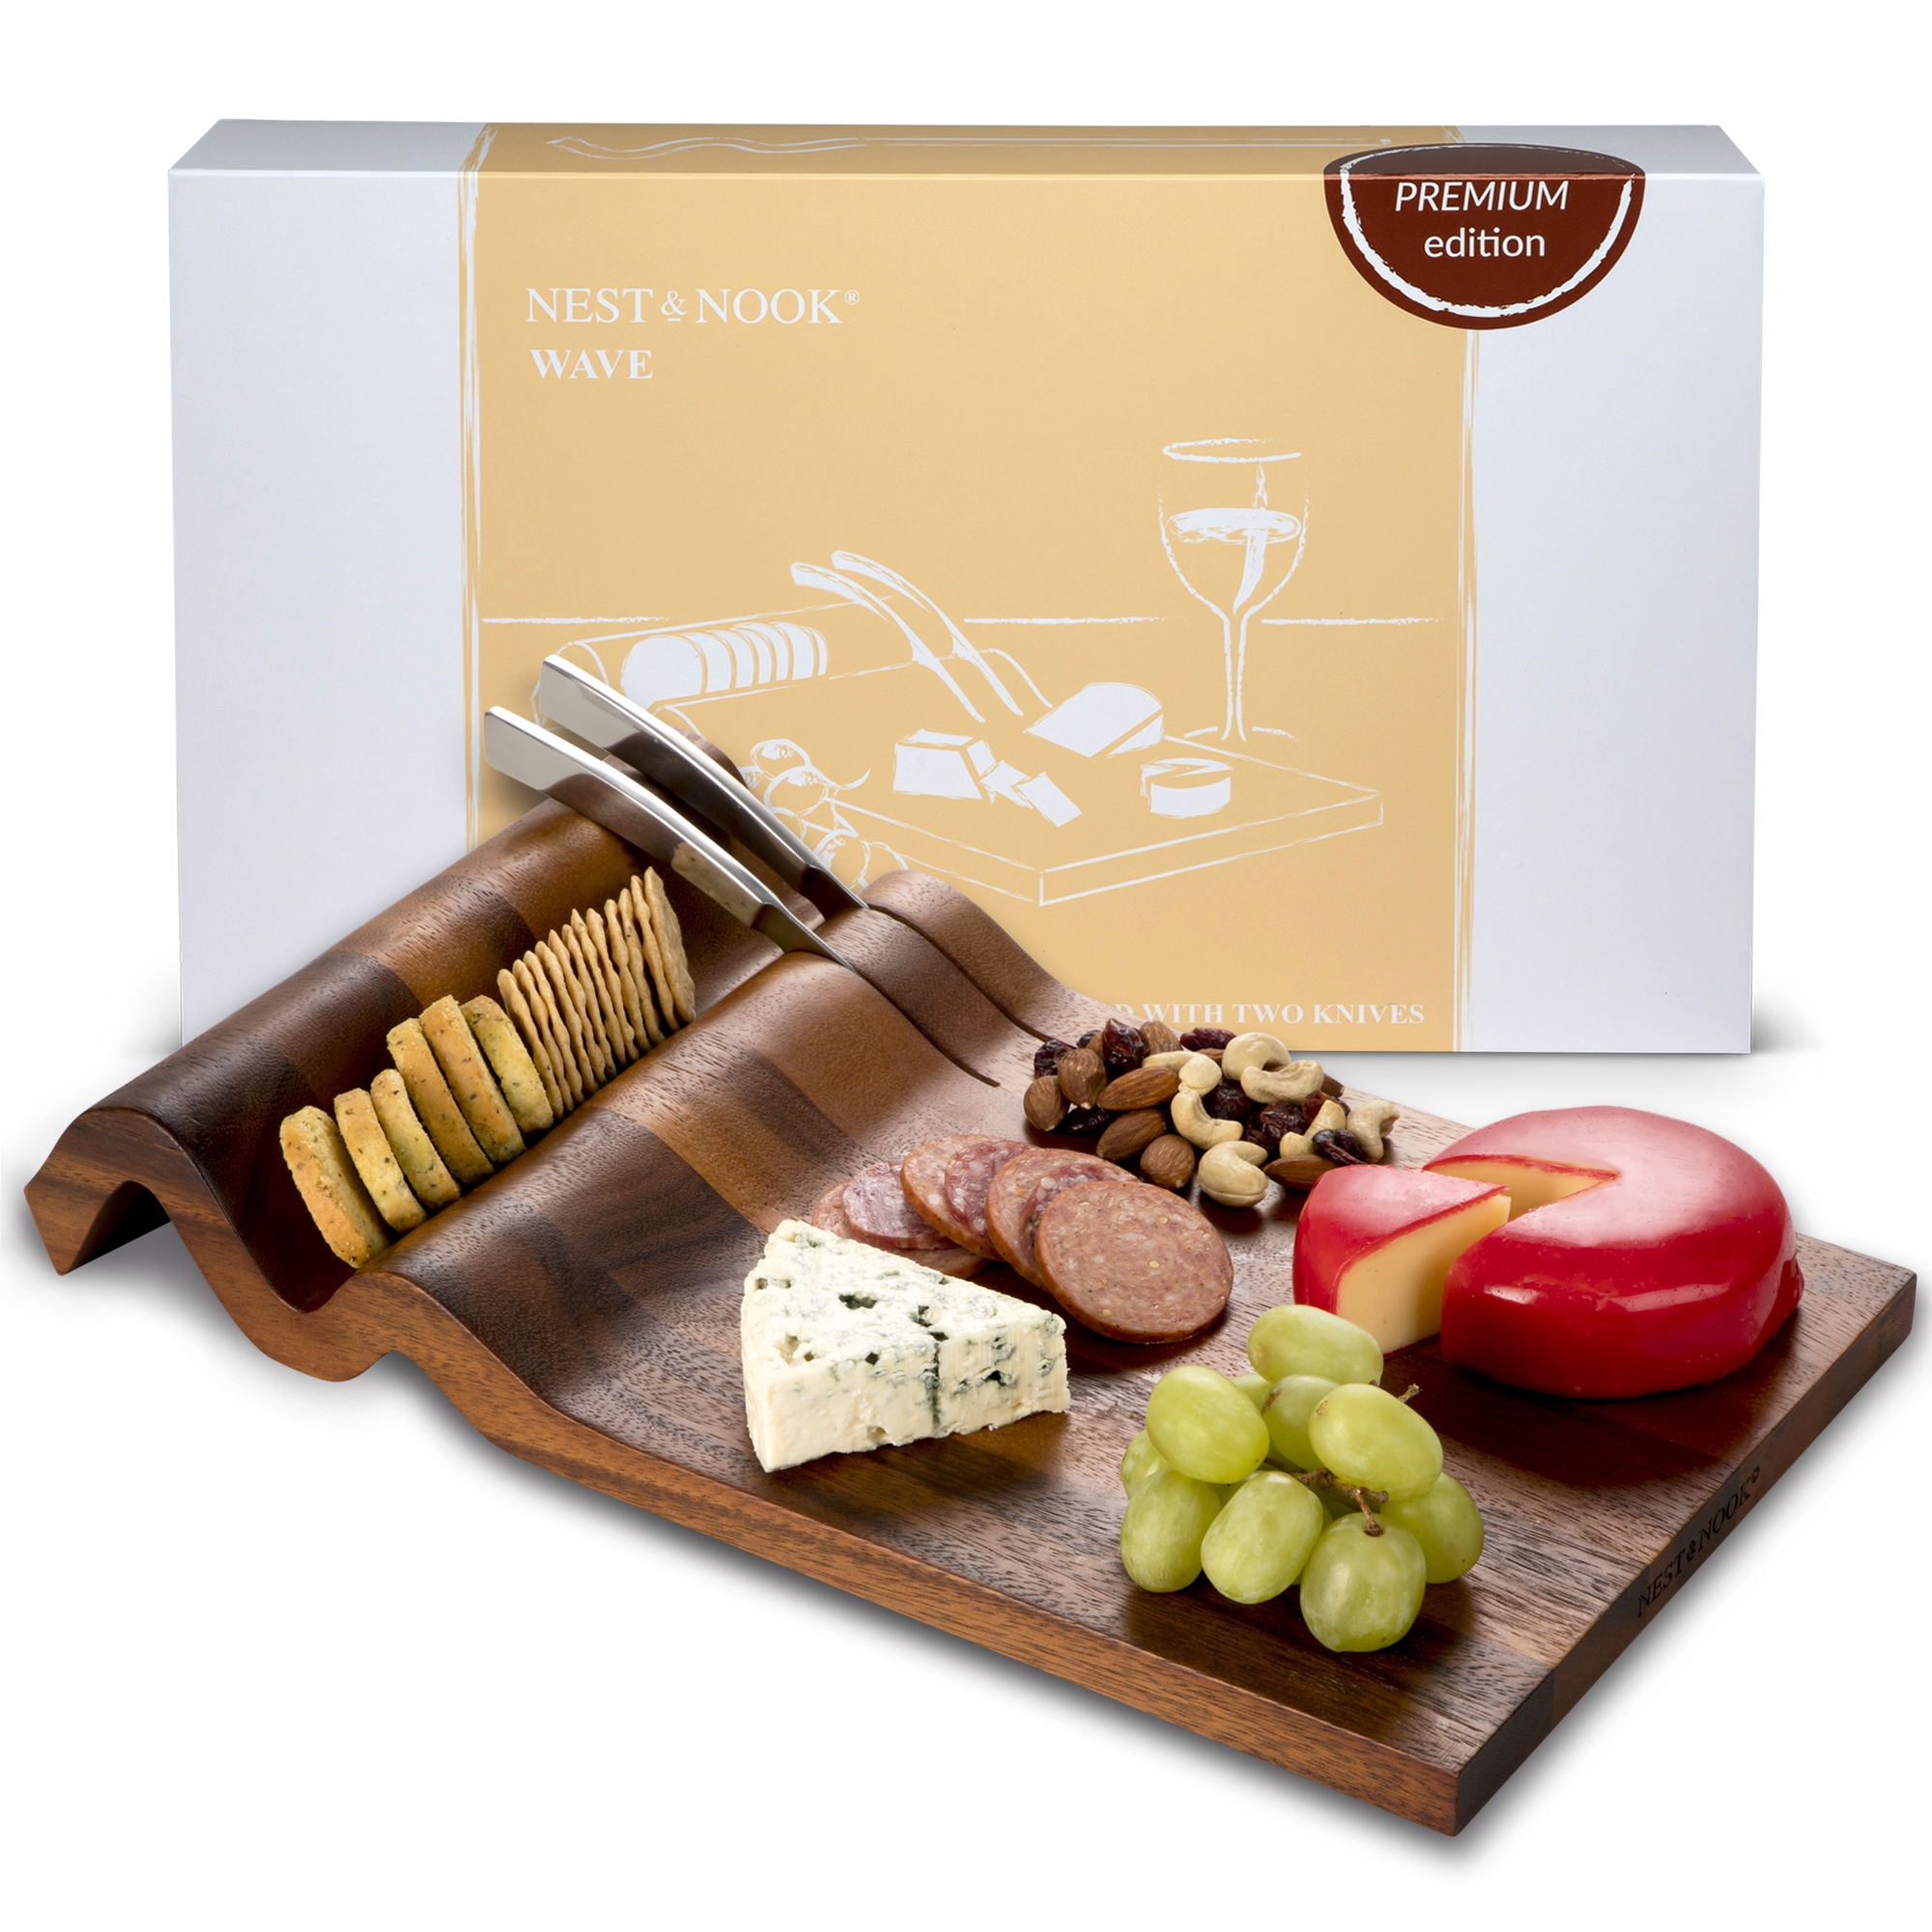 Wave <br>cheese board with knives